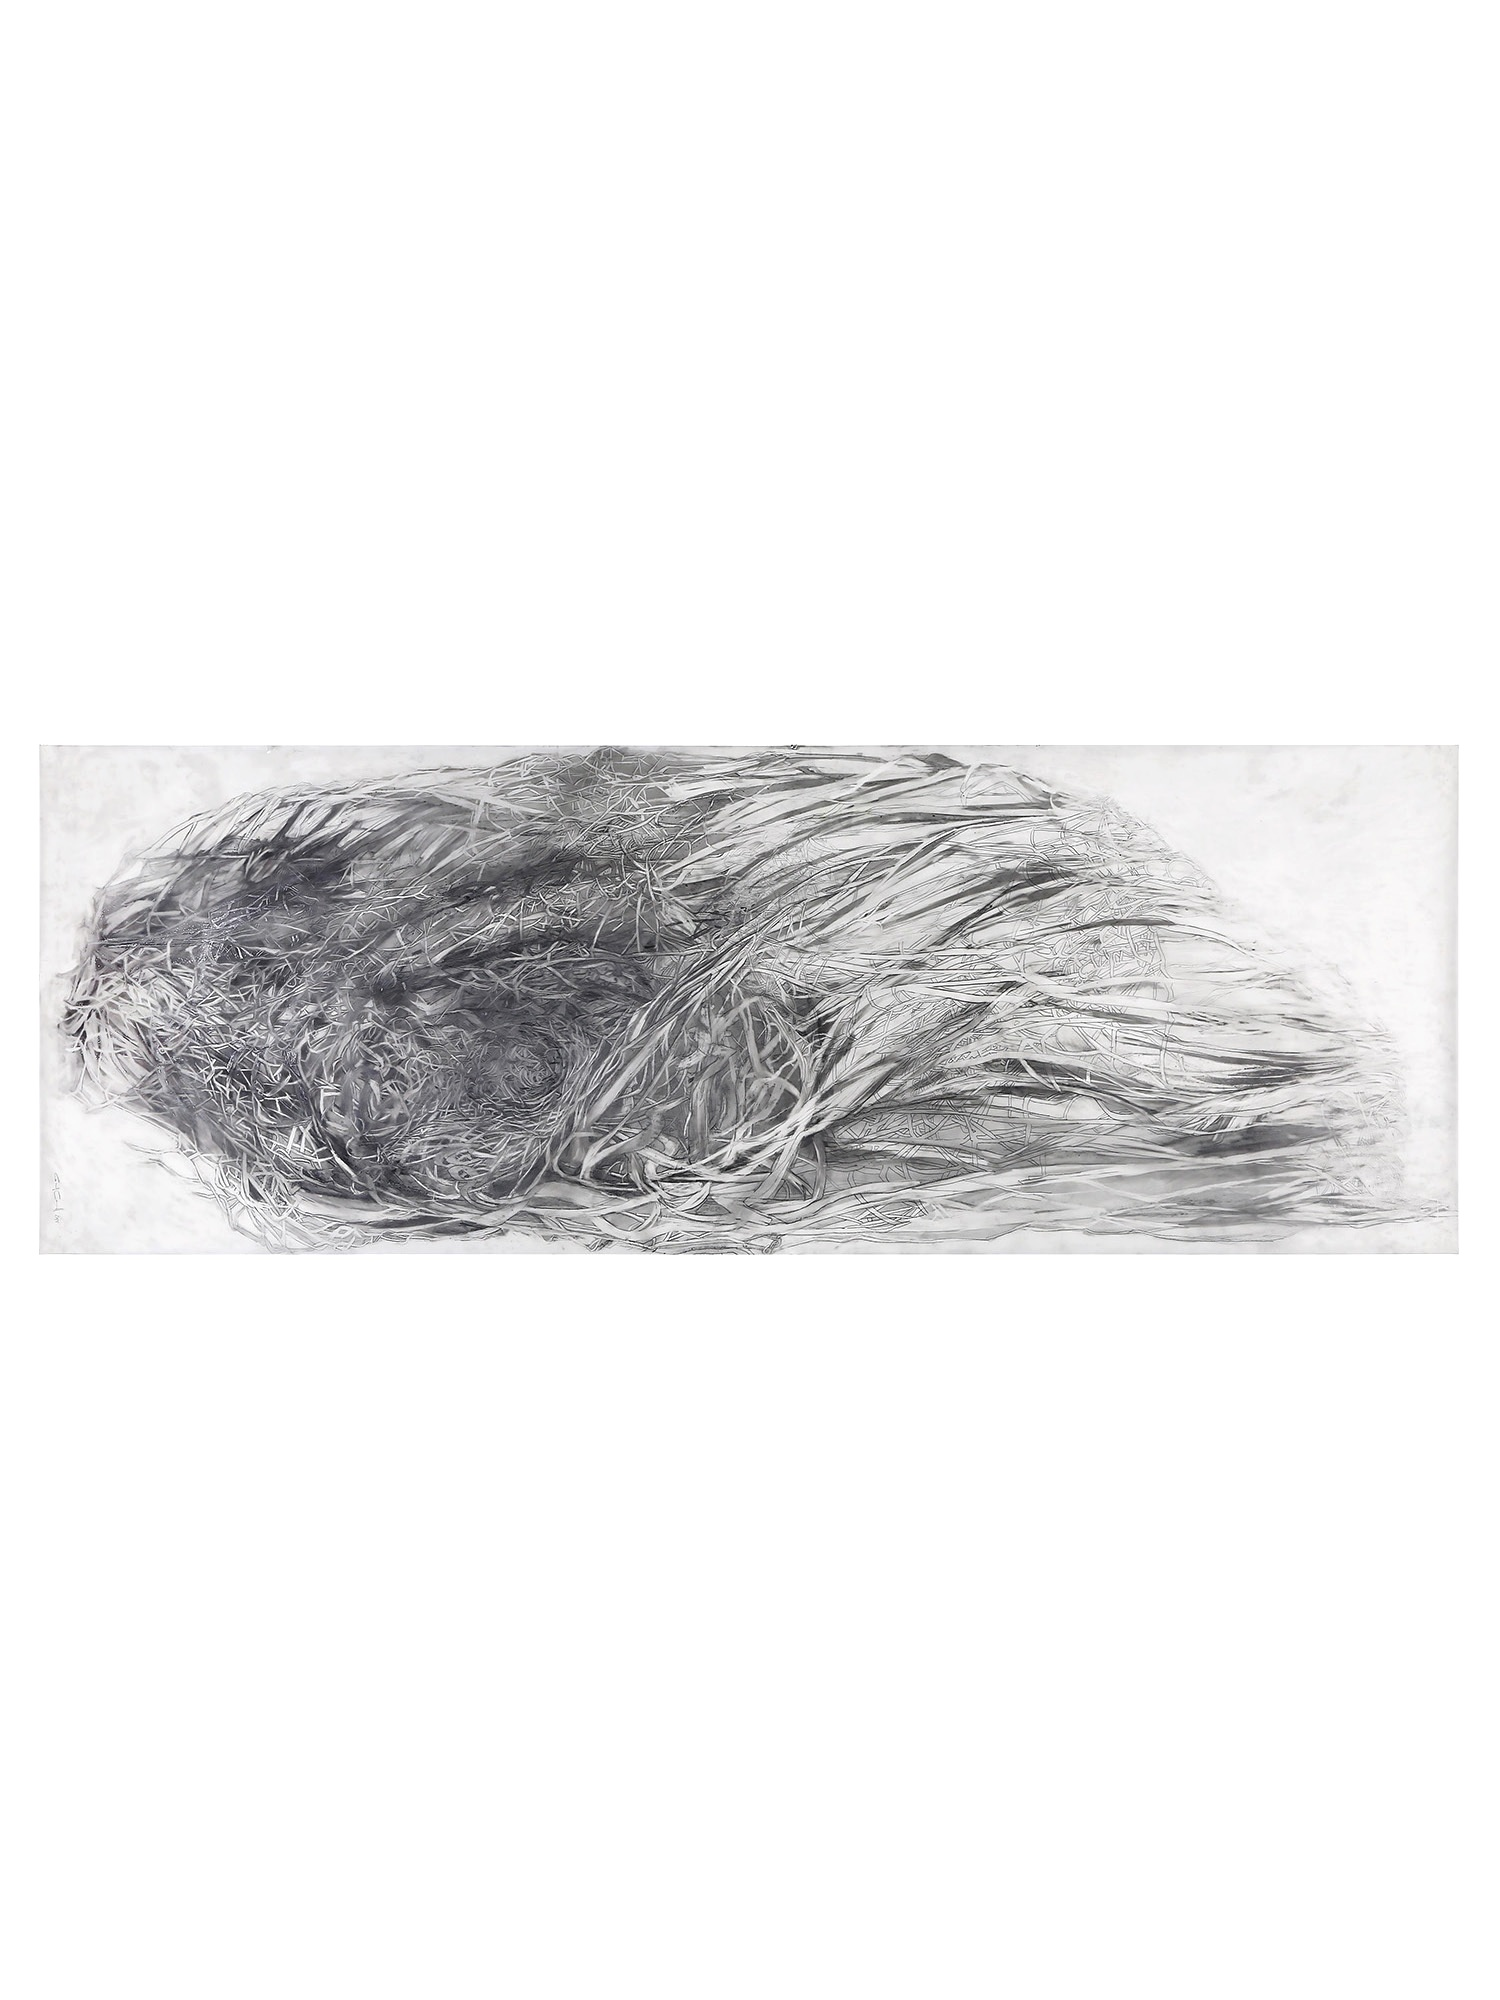 "Flow | 2014 30"" x 84"" graphite on film"